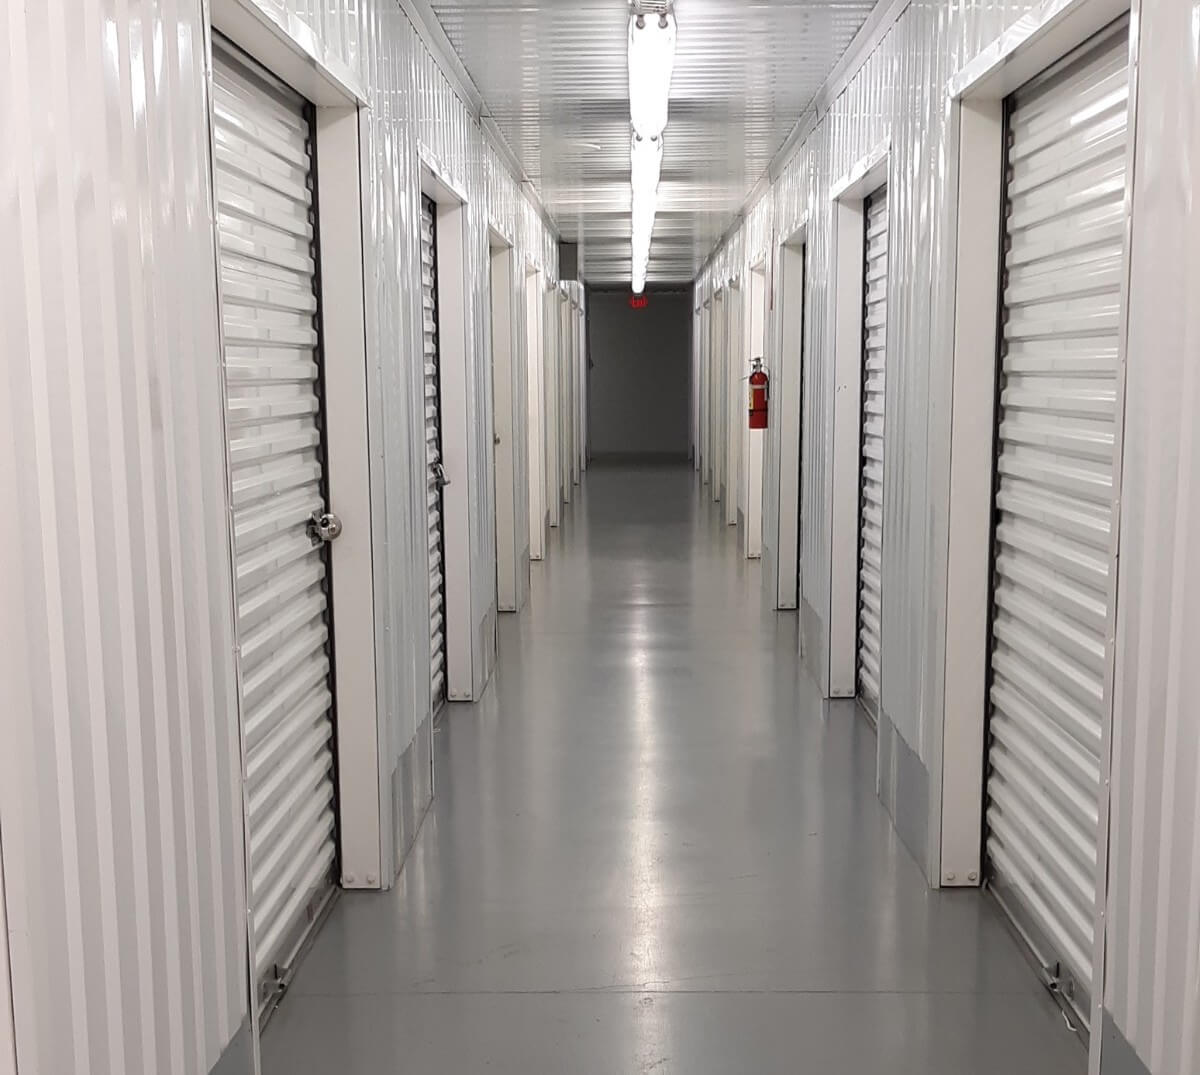 Inside view of storage units at Smart Stop Self Storage facility at 7474 Gosling Road, The Woodlands Texas